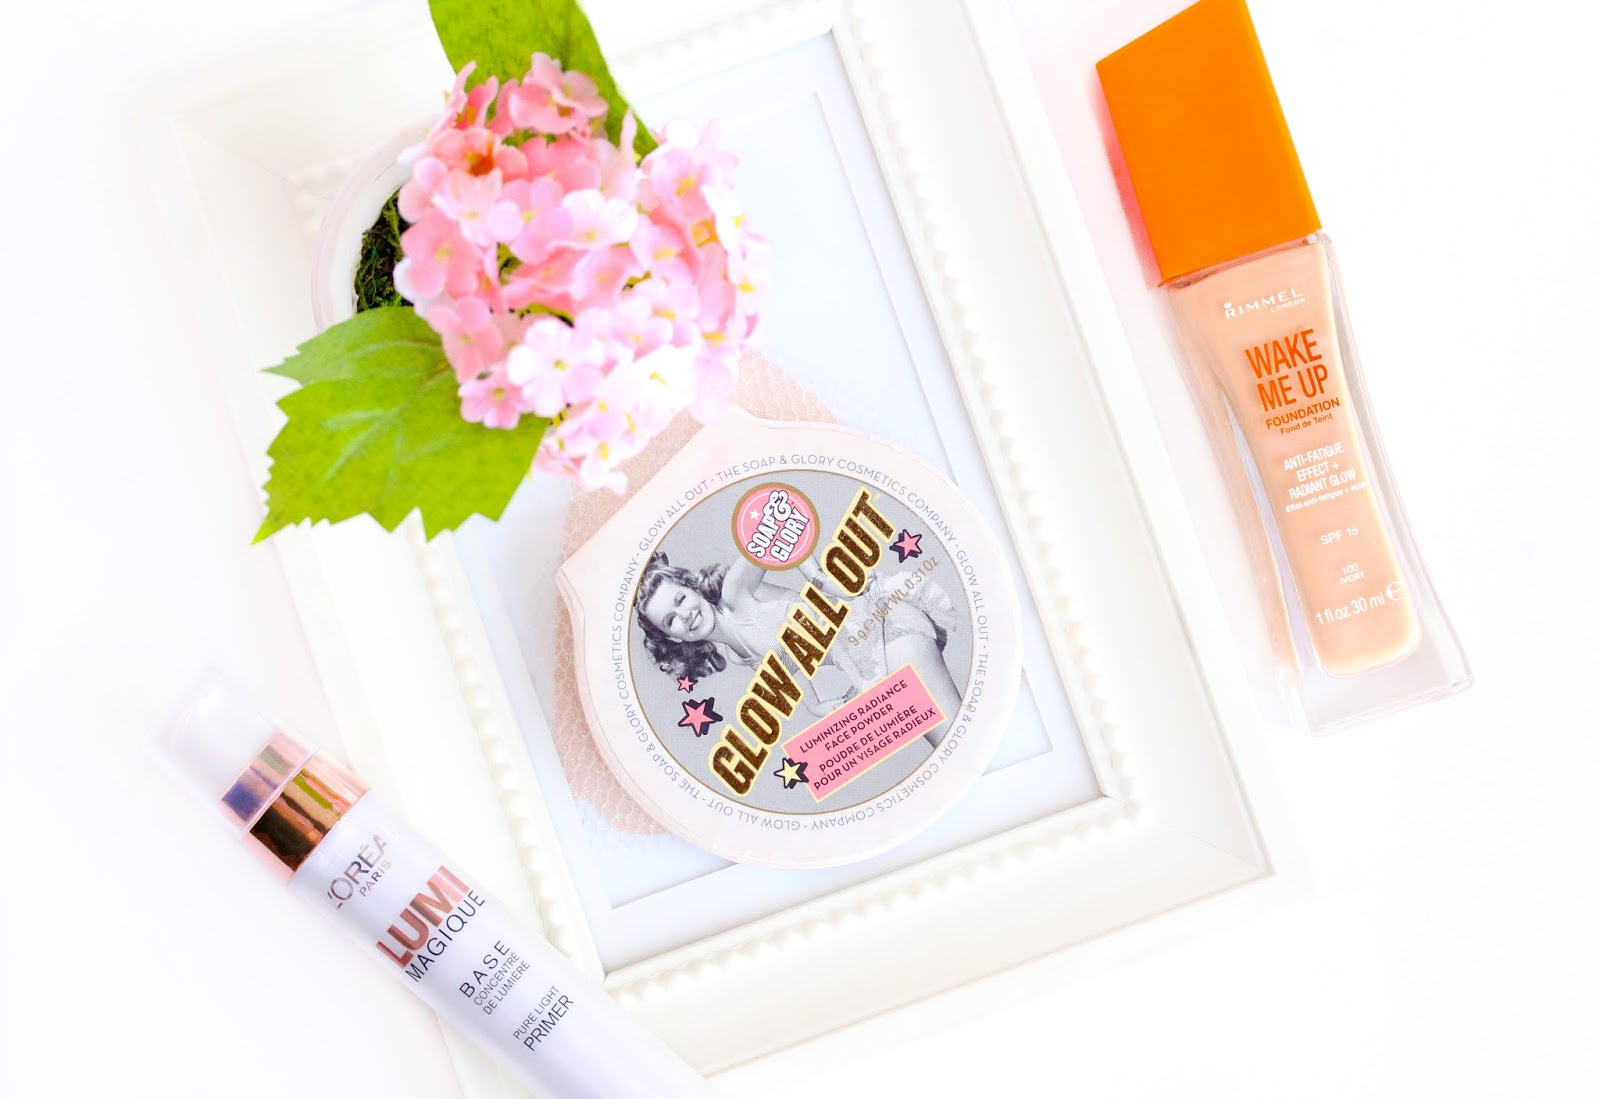 Glowing skin products - Rimmel Wake Me Up Foundation, Loreal Lumi Magique Primer, Soap&Glory Glow All Out